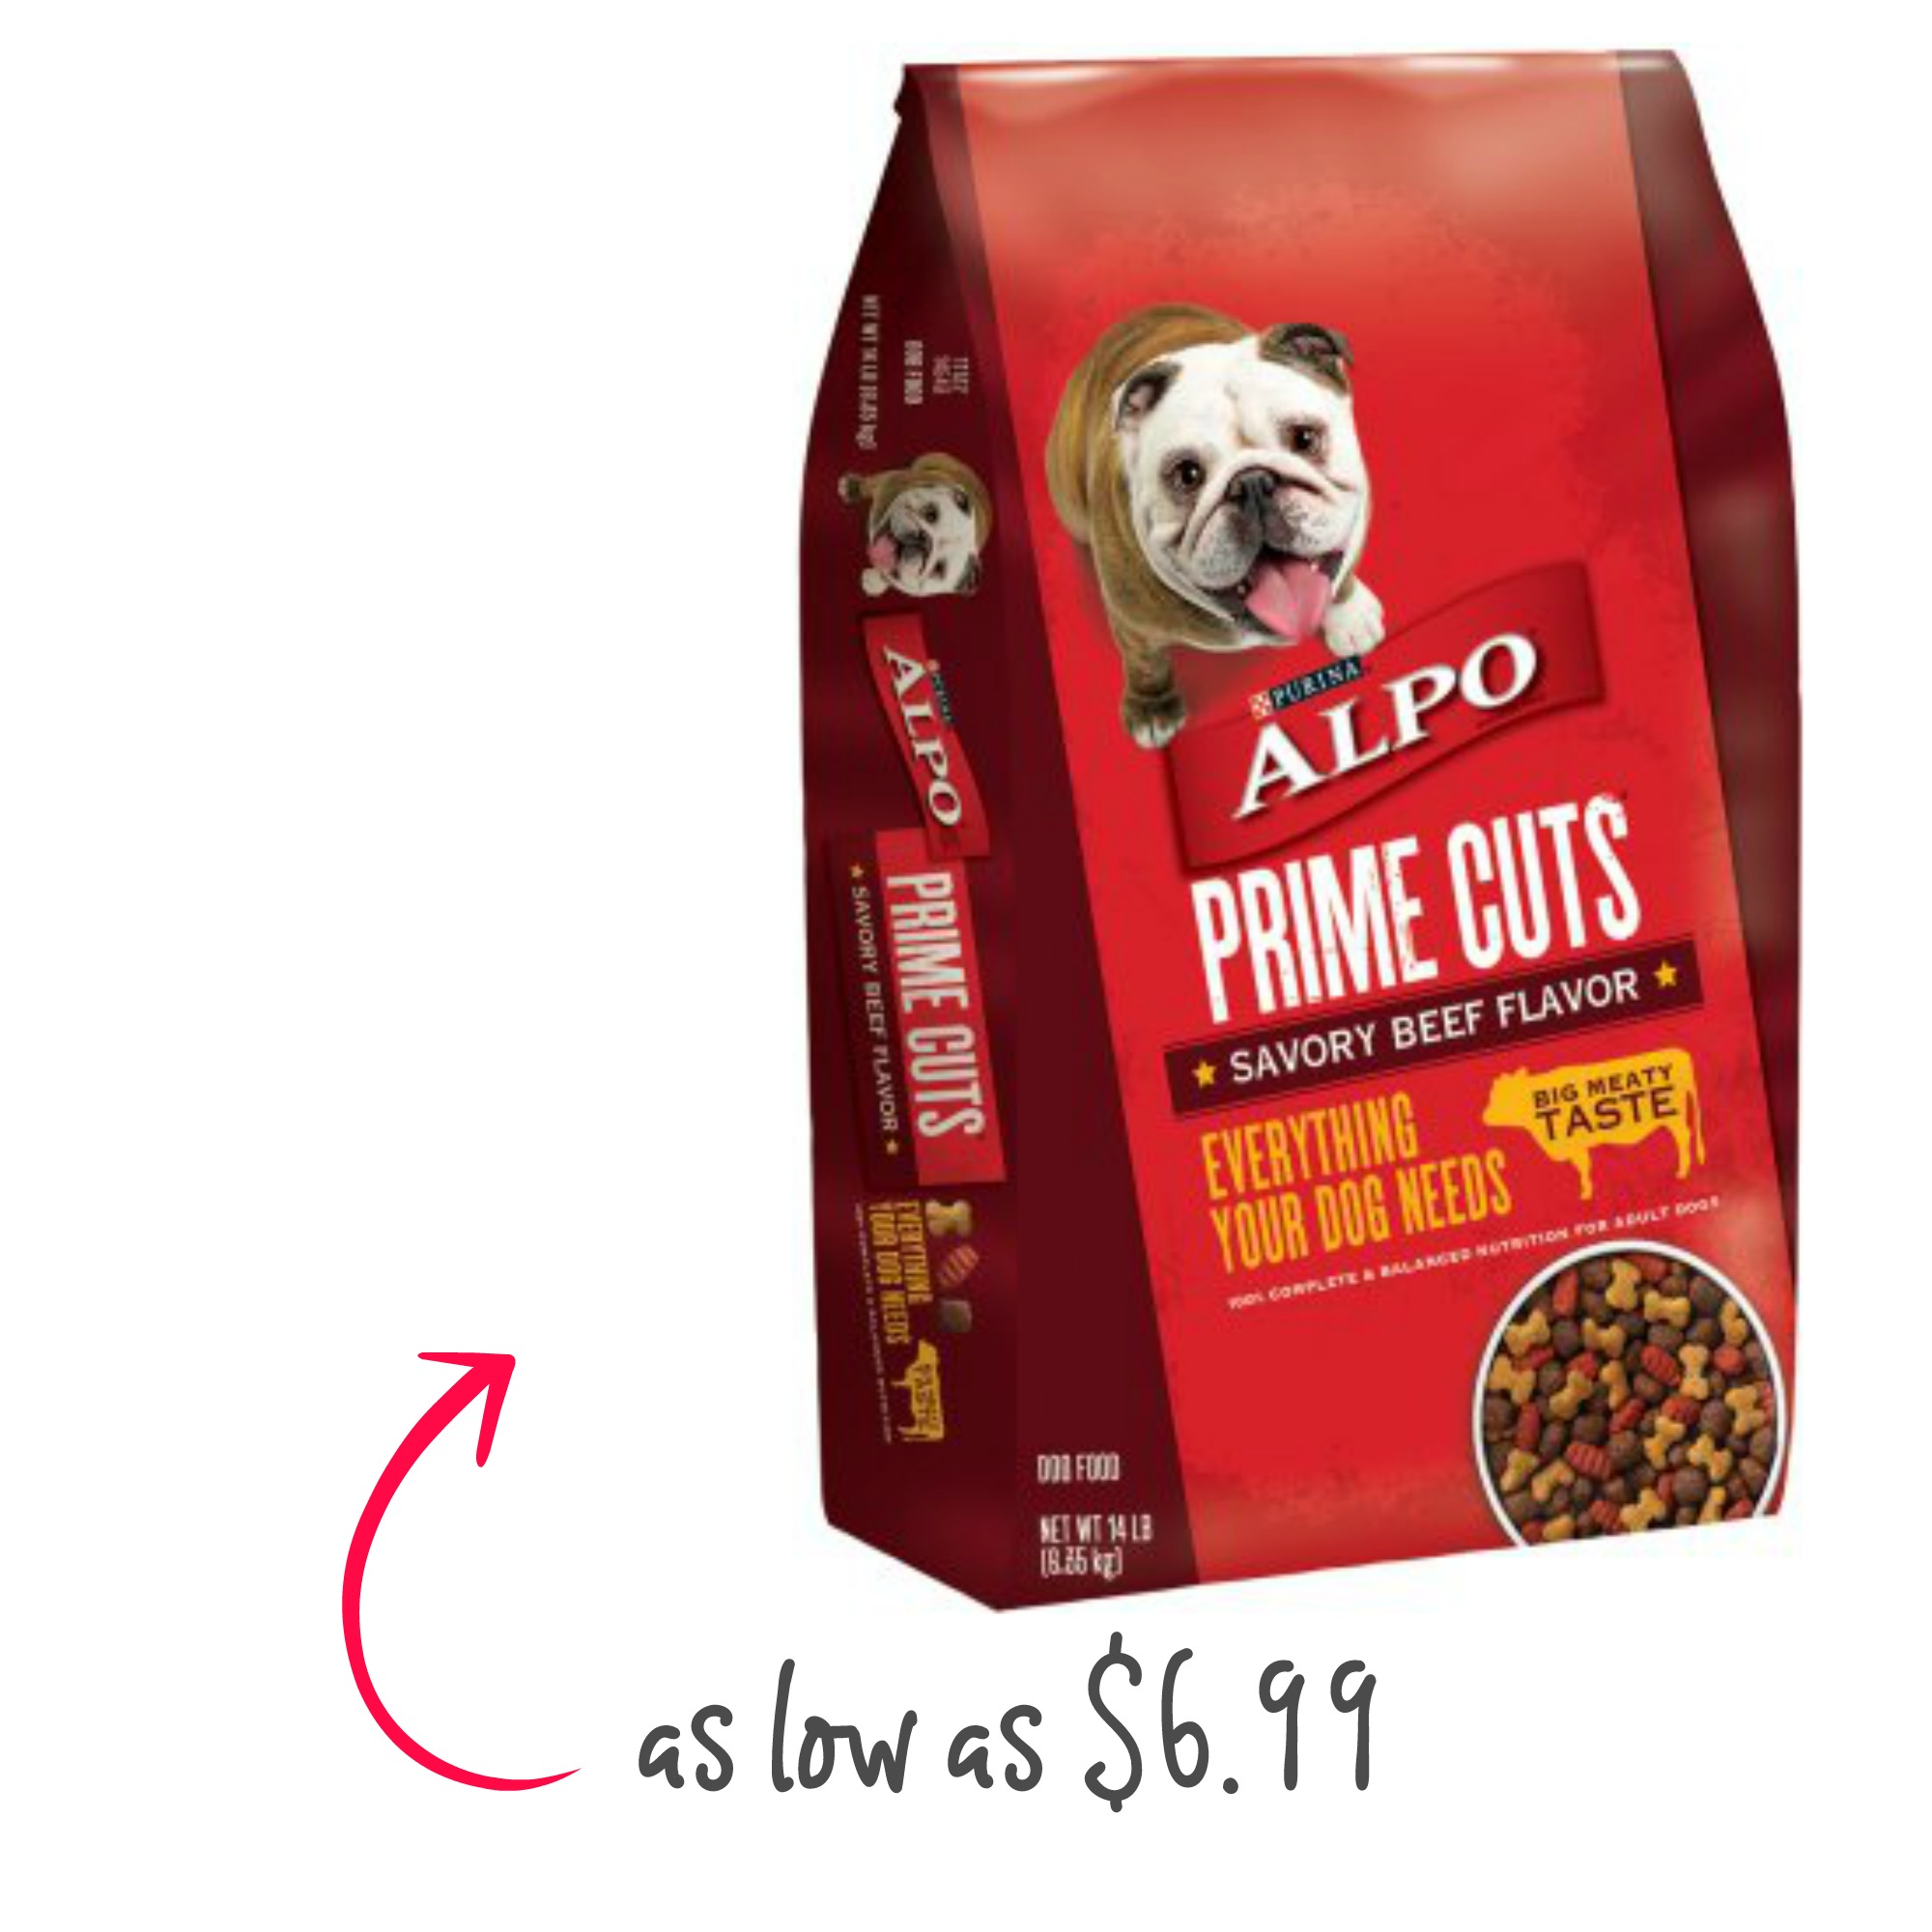 Directions Making the Switch to Purina ONE: Although you'll be anxious to see the difference Purina ONE can make in your dog, please allow days to ease the transition from your dog's current food.